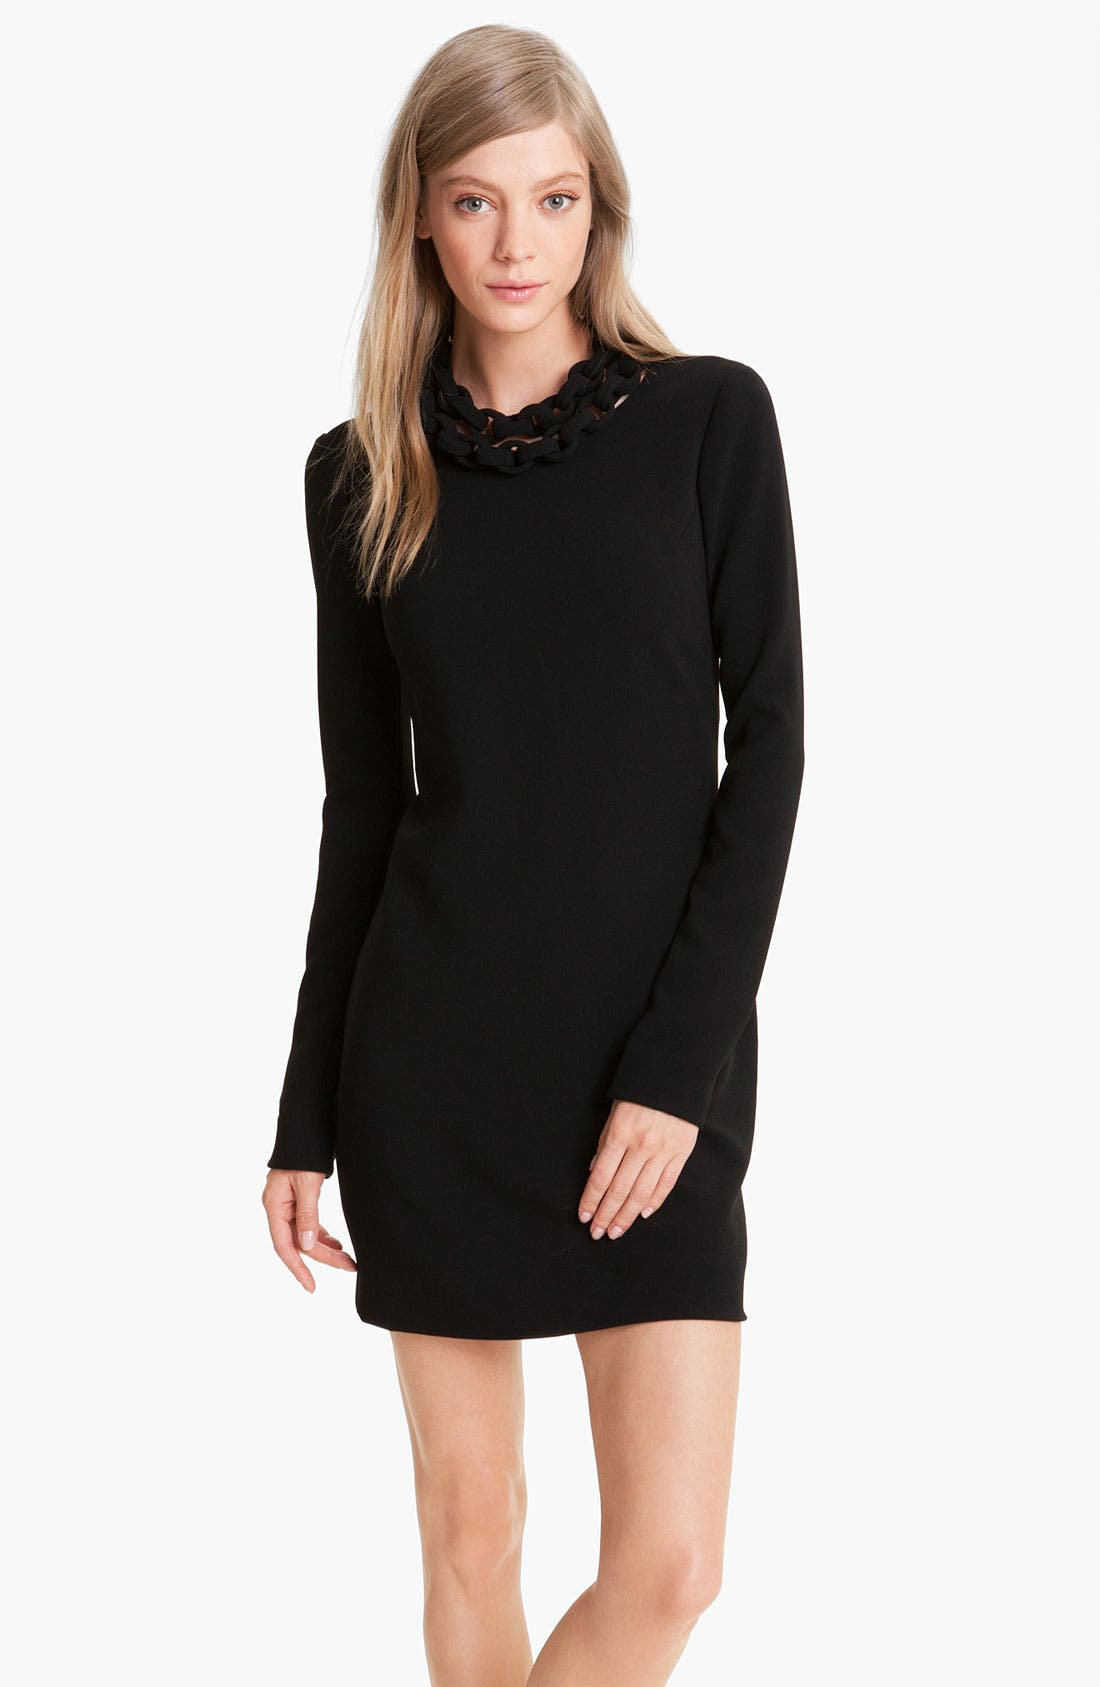 Alternate Image 1 Selected - Diane von Furstenberg 'Giada' Chain Collar Dress